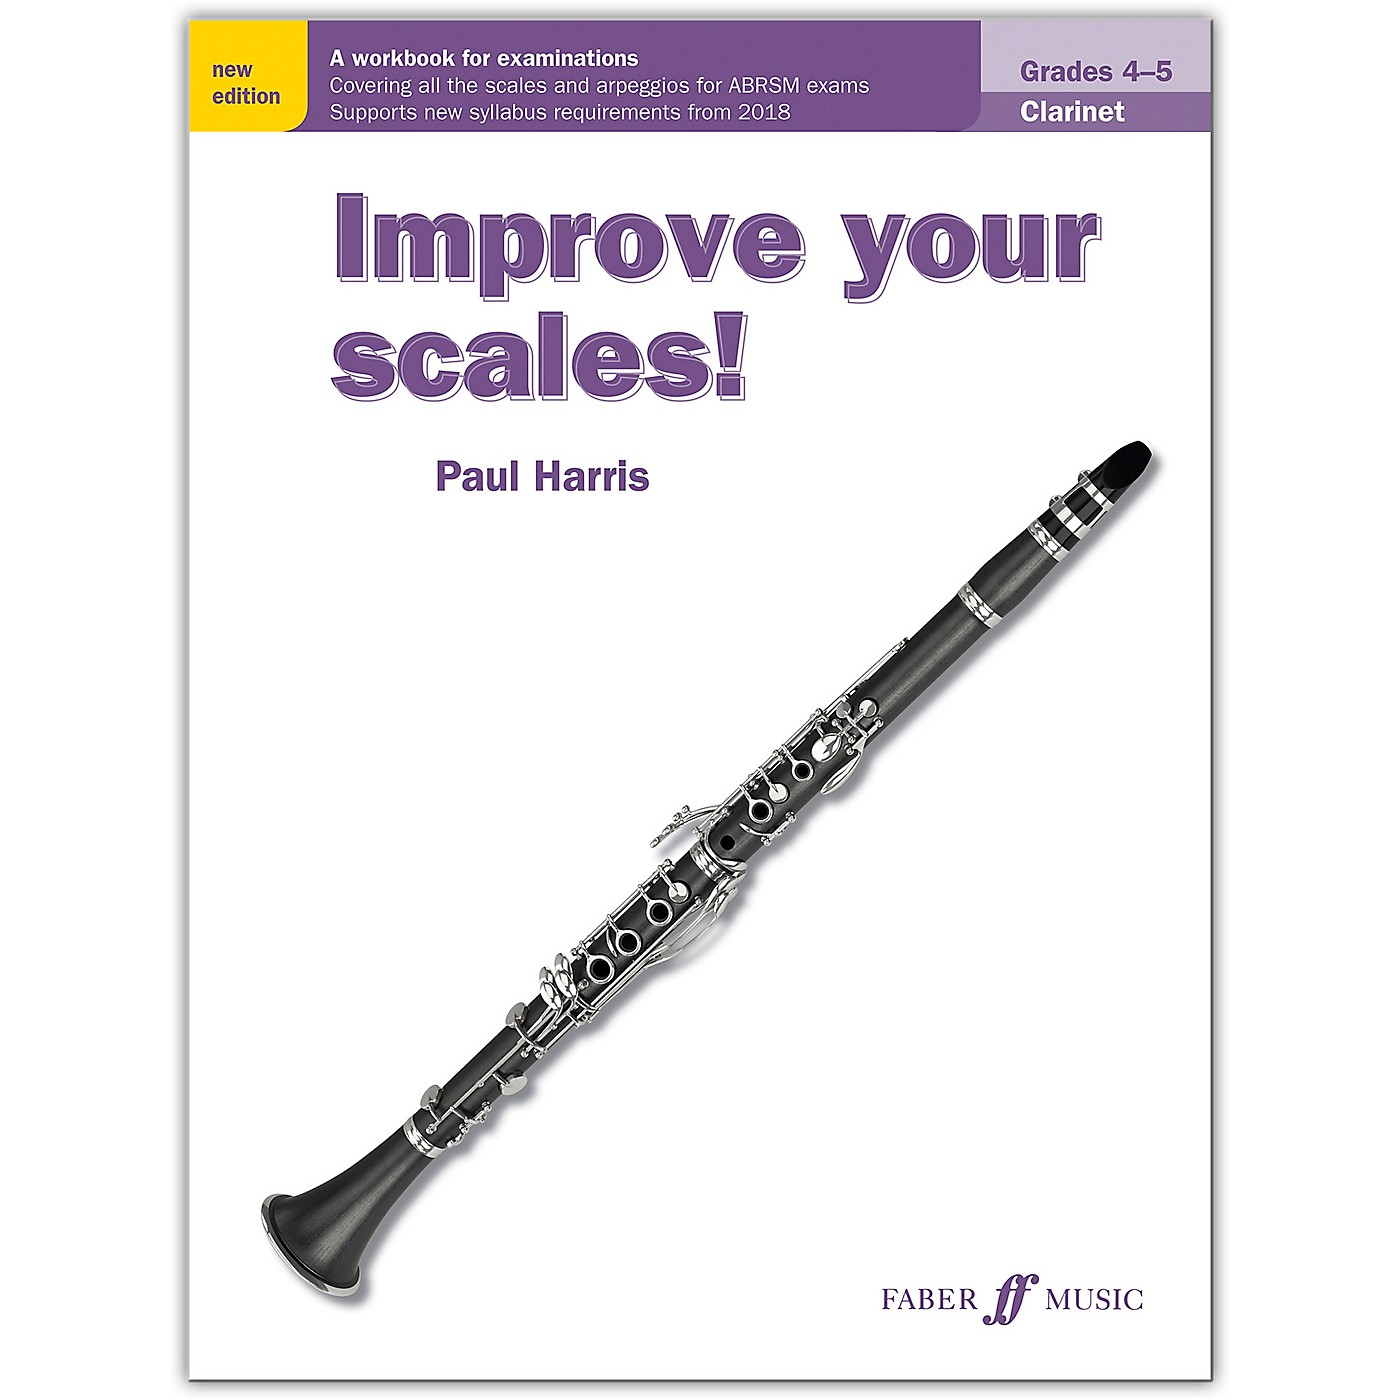 Faber Music LTD Improve Your Scales! Clarinet, Grades 4-5 thumbnail